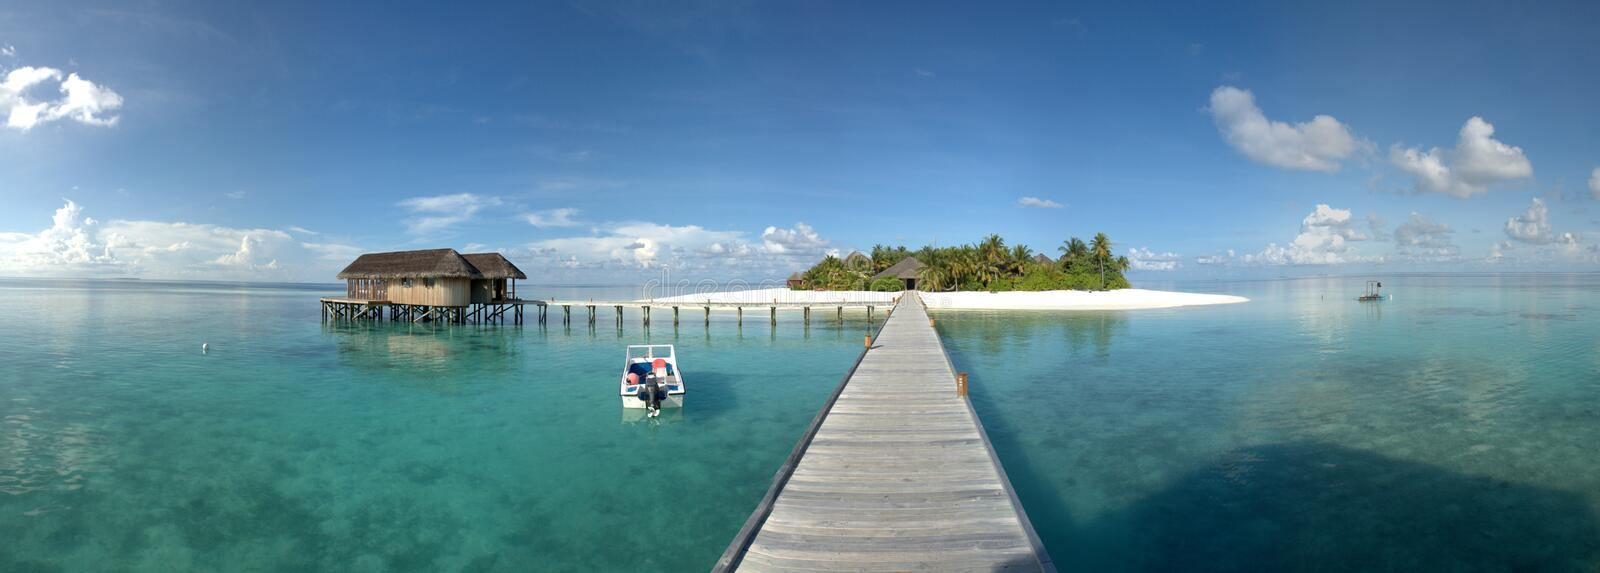 Way to paradise. Island resort in the Maldives royalty free stock images